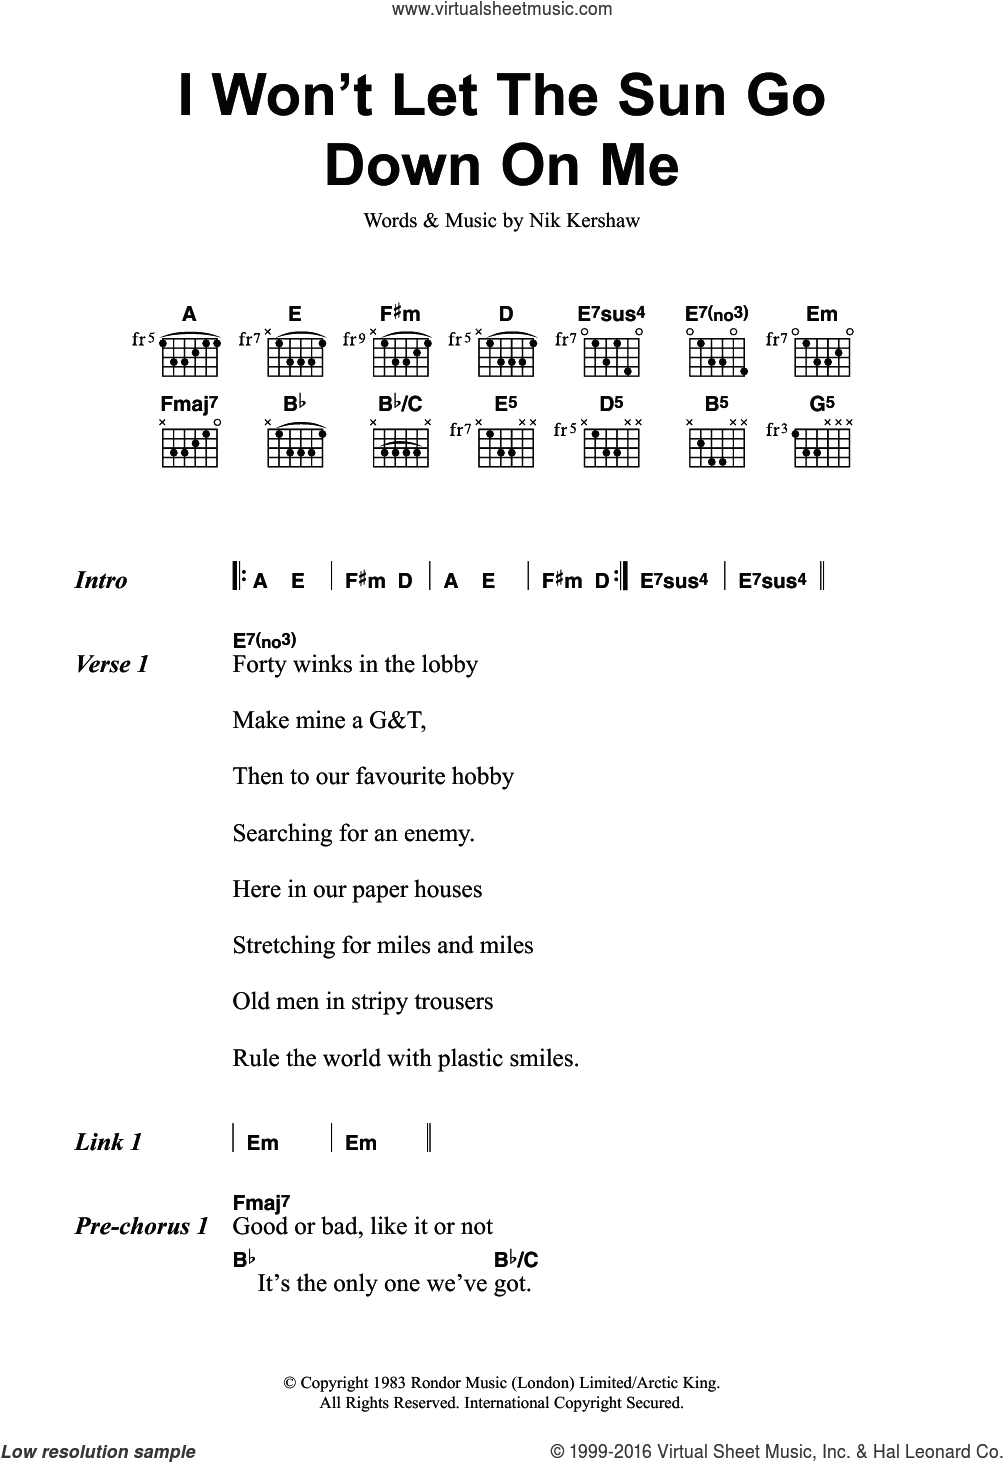 I Won't Let The Sun Go Down On Me sheet music for guitar (chords) by Nik Kershaw, intermediate skill level